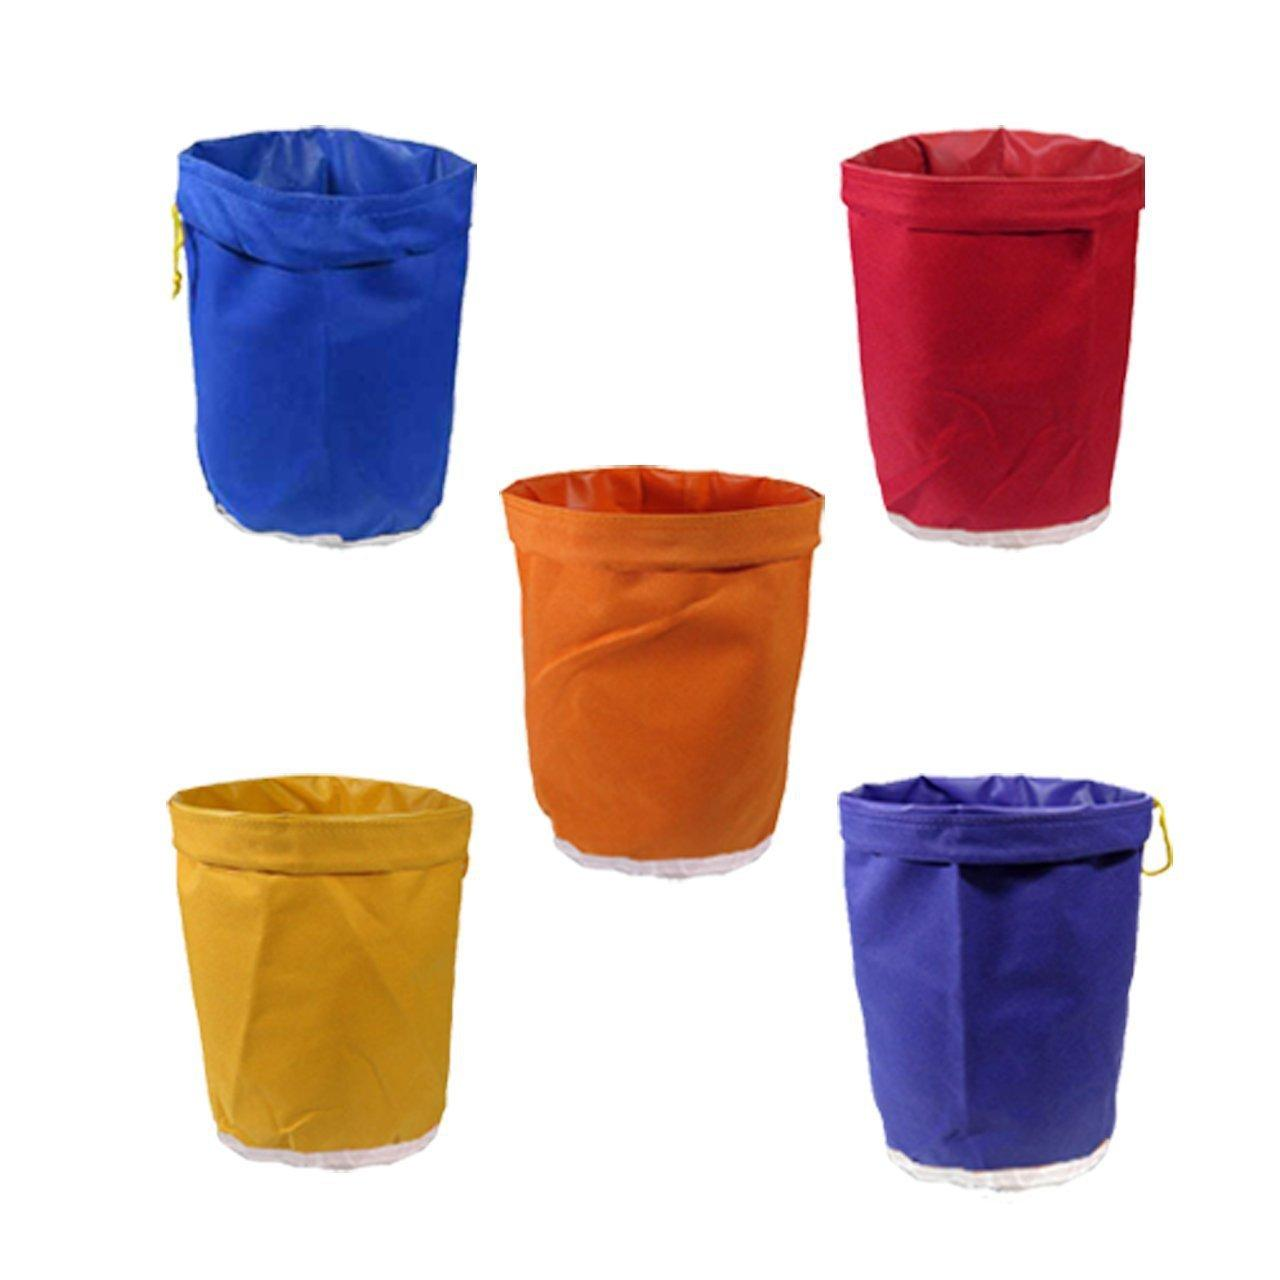 5 Gallon Filter Bubble Bag Set Waterproof Garden Grow Bag Hash Herbal Ice Essence Extractor Kit Extraction Bag Oxford